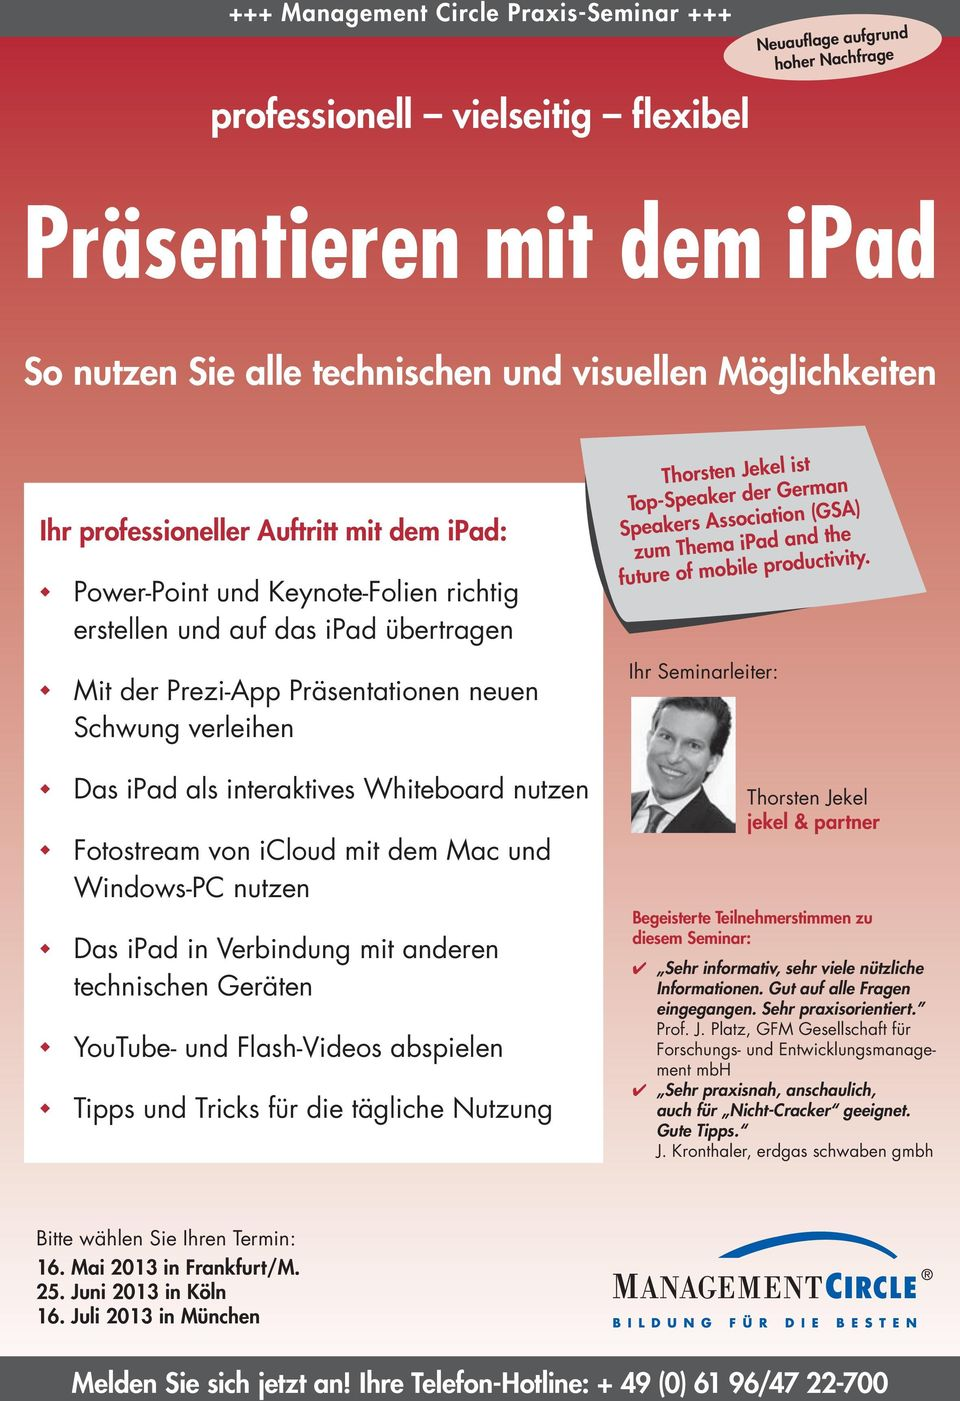 Speakers Association (GSA) zum Thema ipad and the future of mobile productivity.